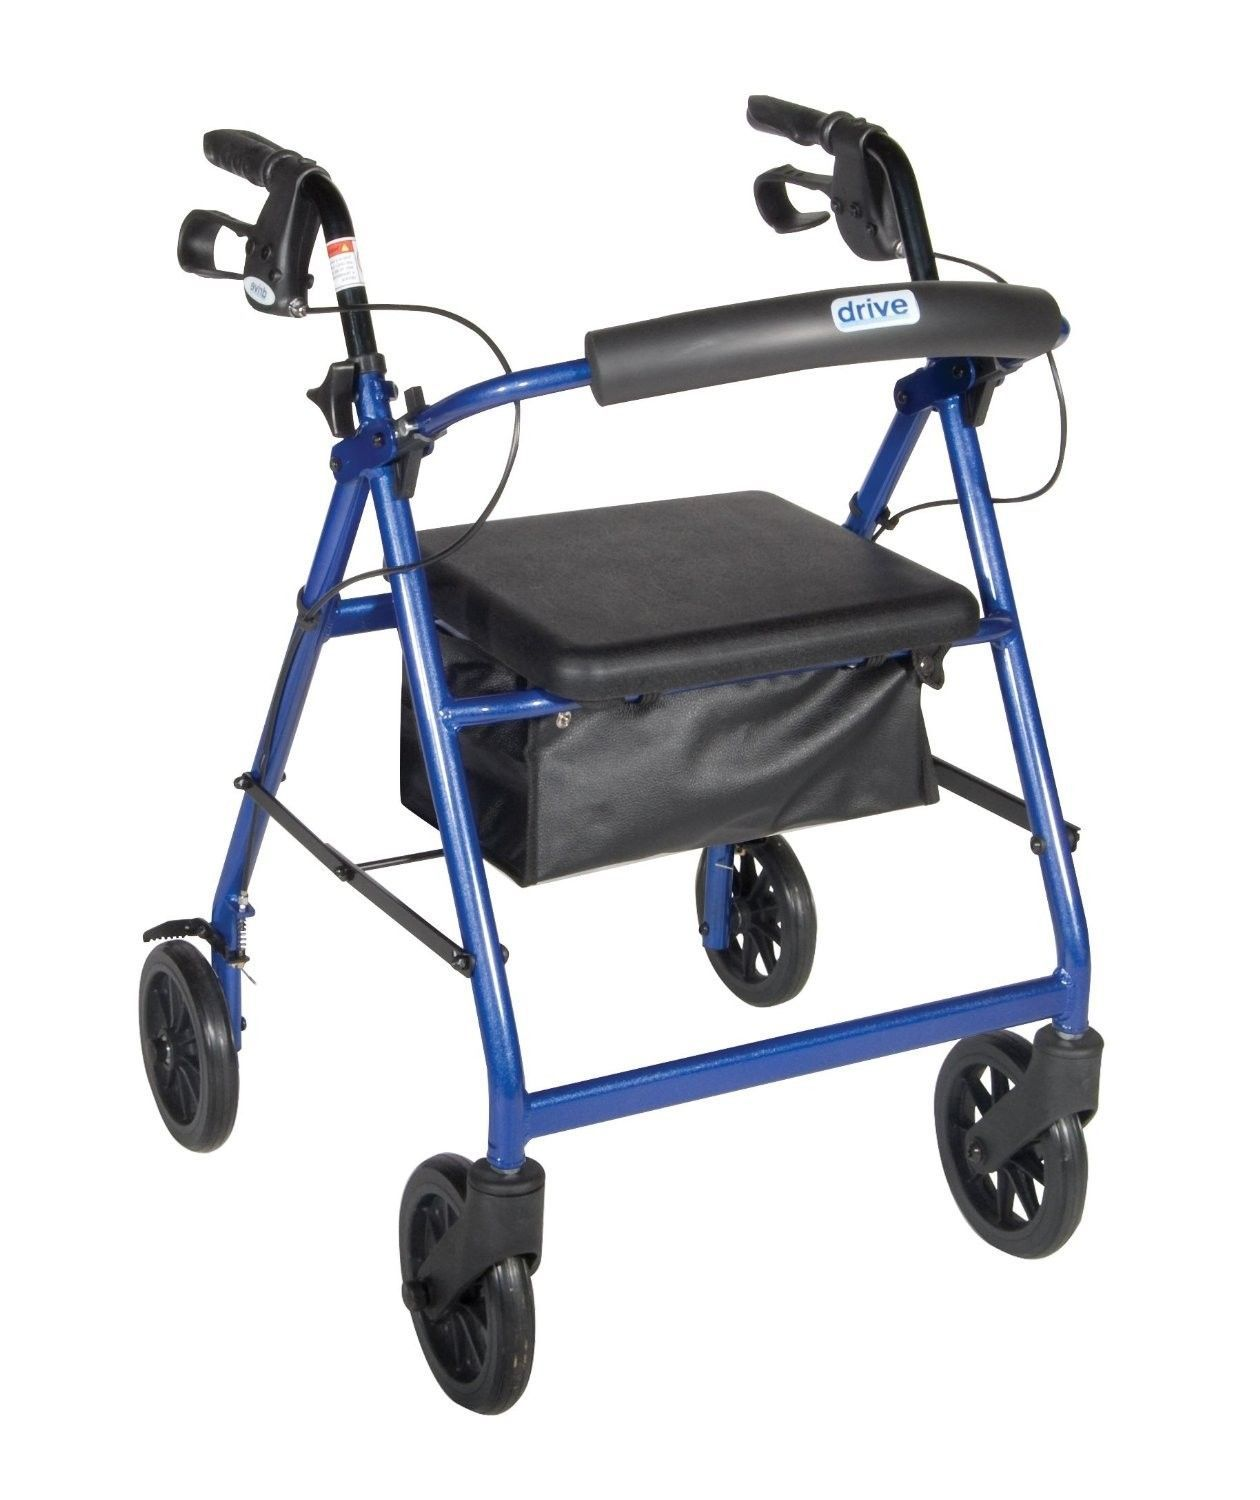 Drive Medical Walkabout Walker Loop Brakes Rollator Mobile Pad Seat Support NEW